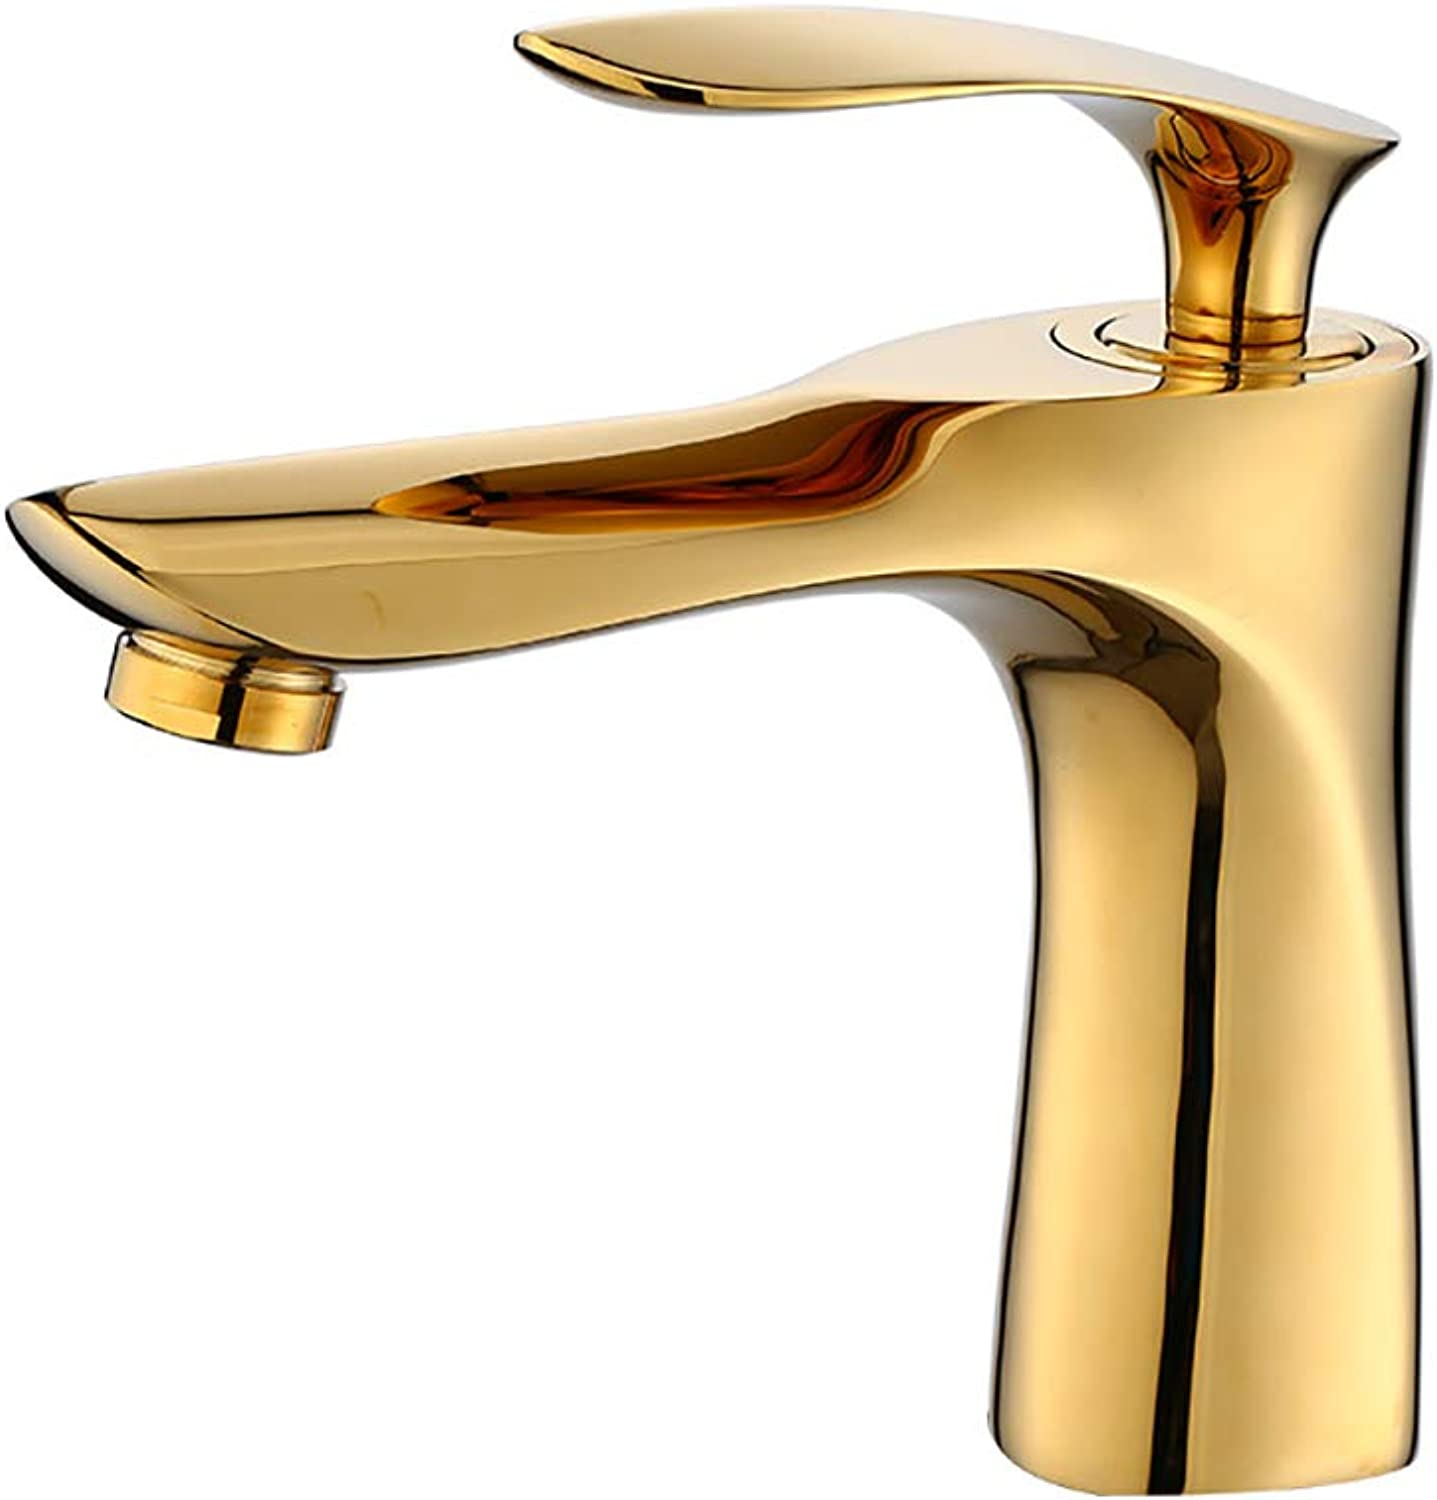 Y&XQ Y&XQBathroom faucet,sink faucet Single Handle prevent splashing, Single Control Modern Cold and heat regulation copper faucet,gold